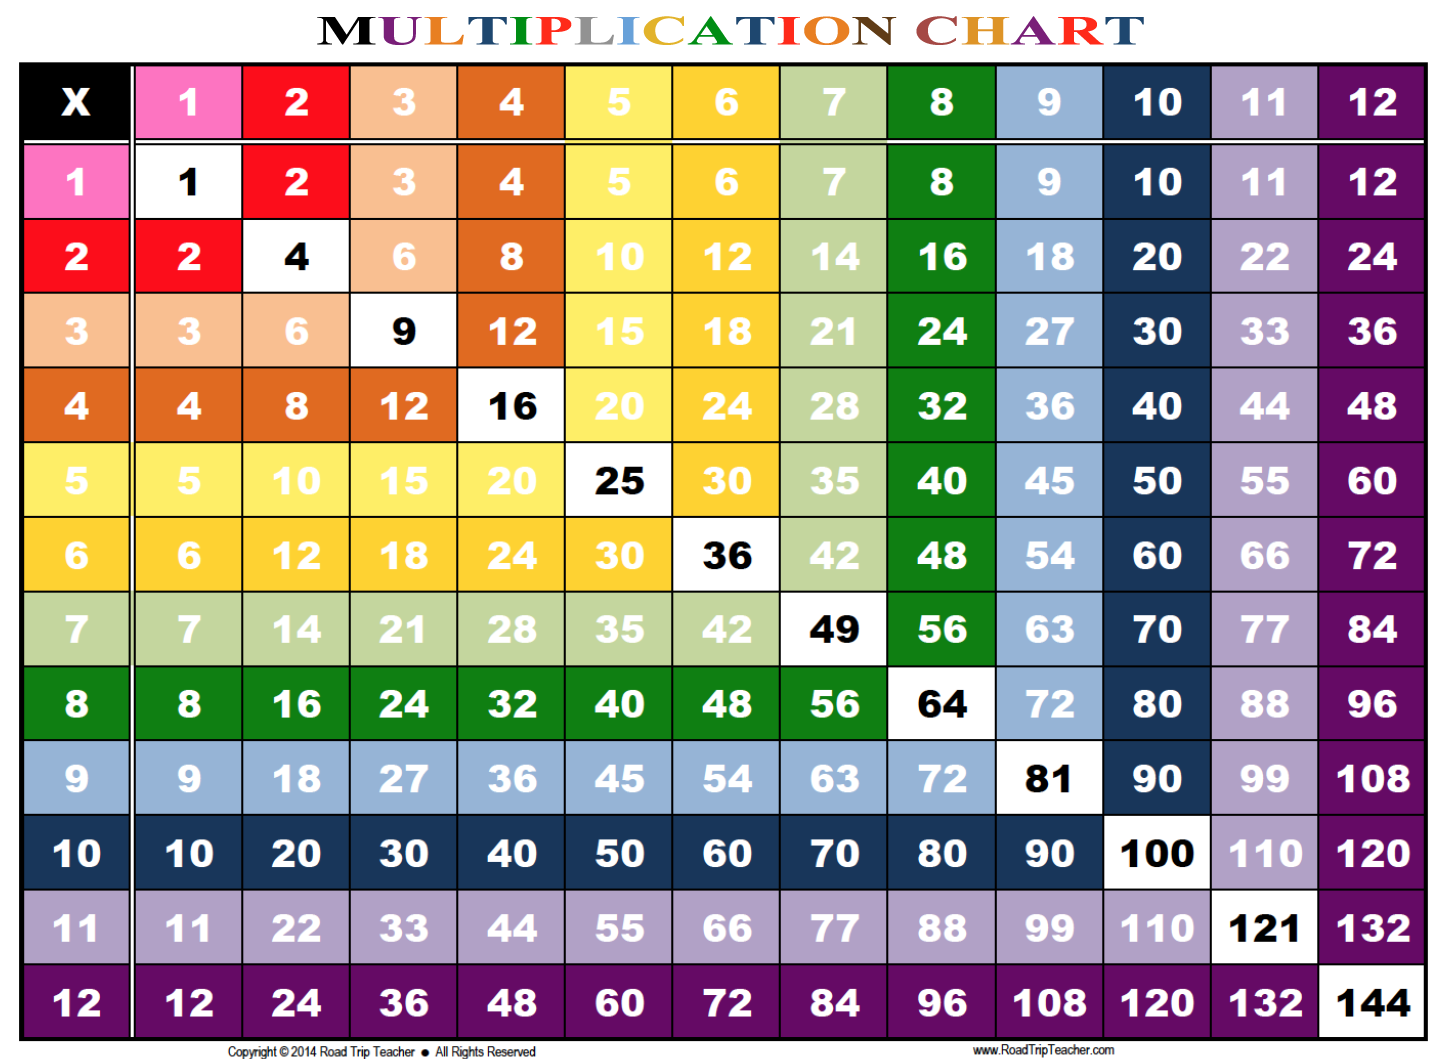 Rainbow multiplication chart family educational resources road rainbow multiplication chart gamestrikefo Gallery